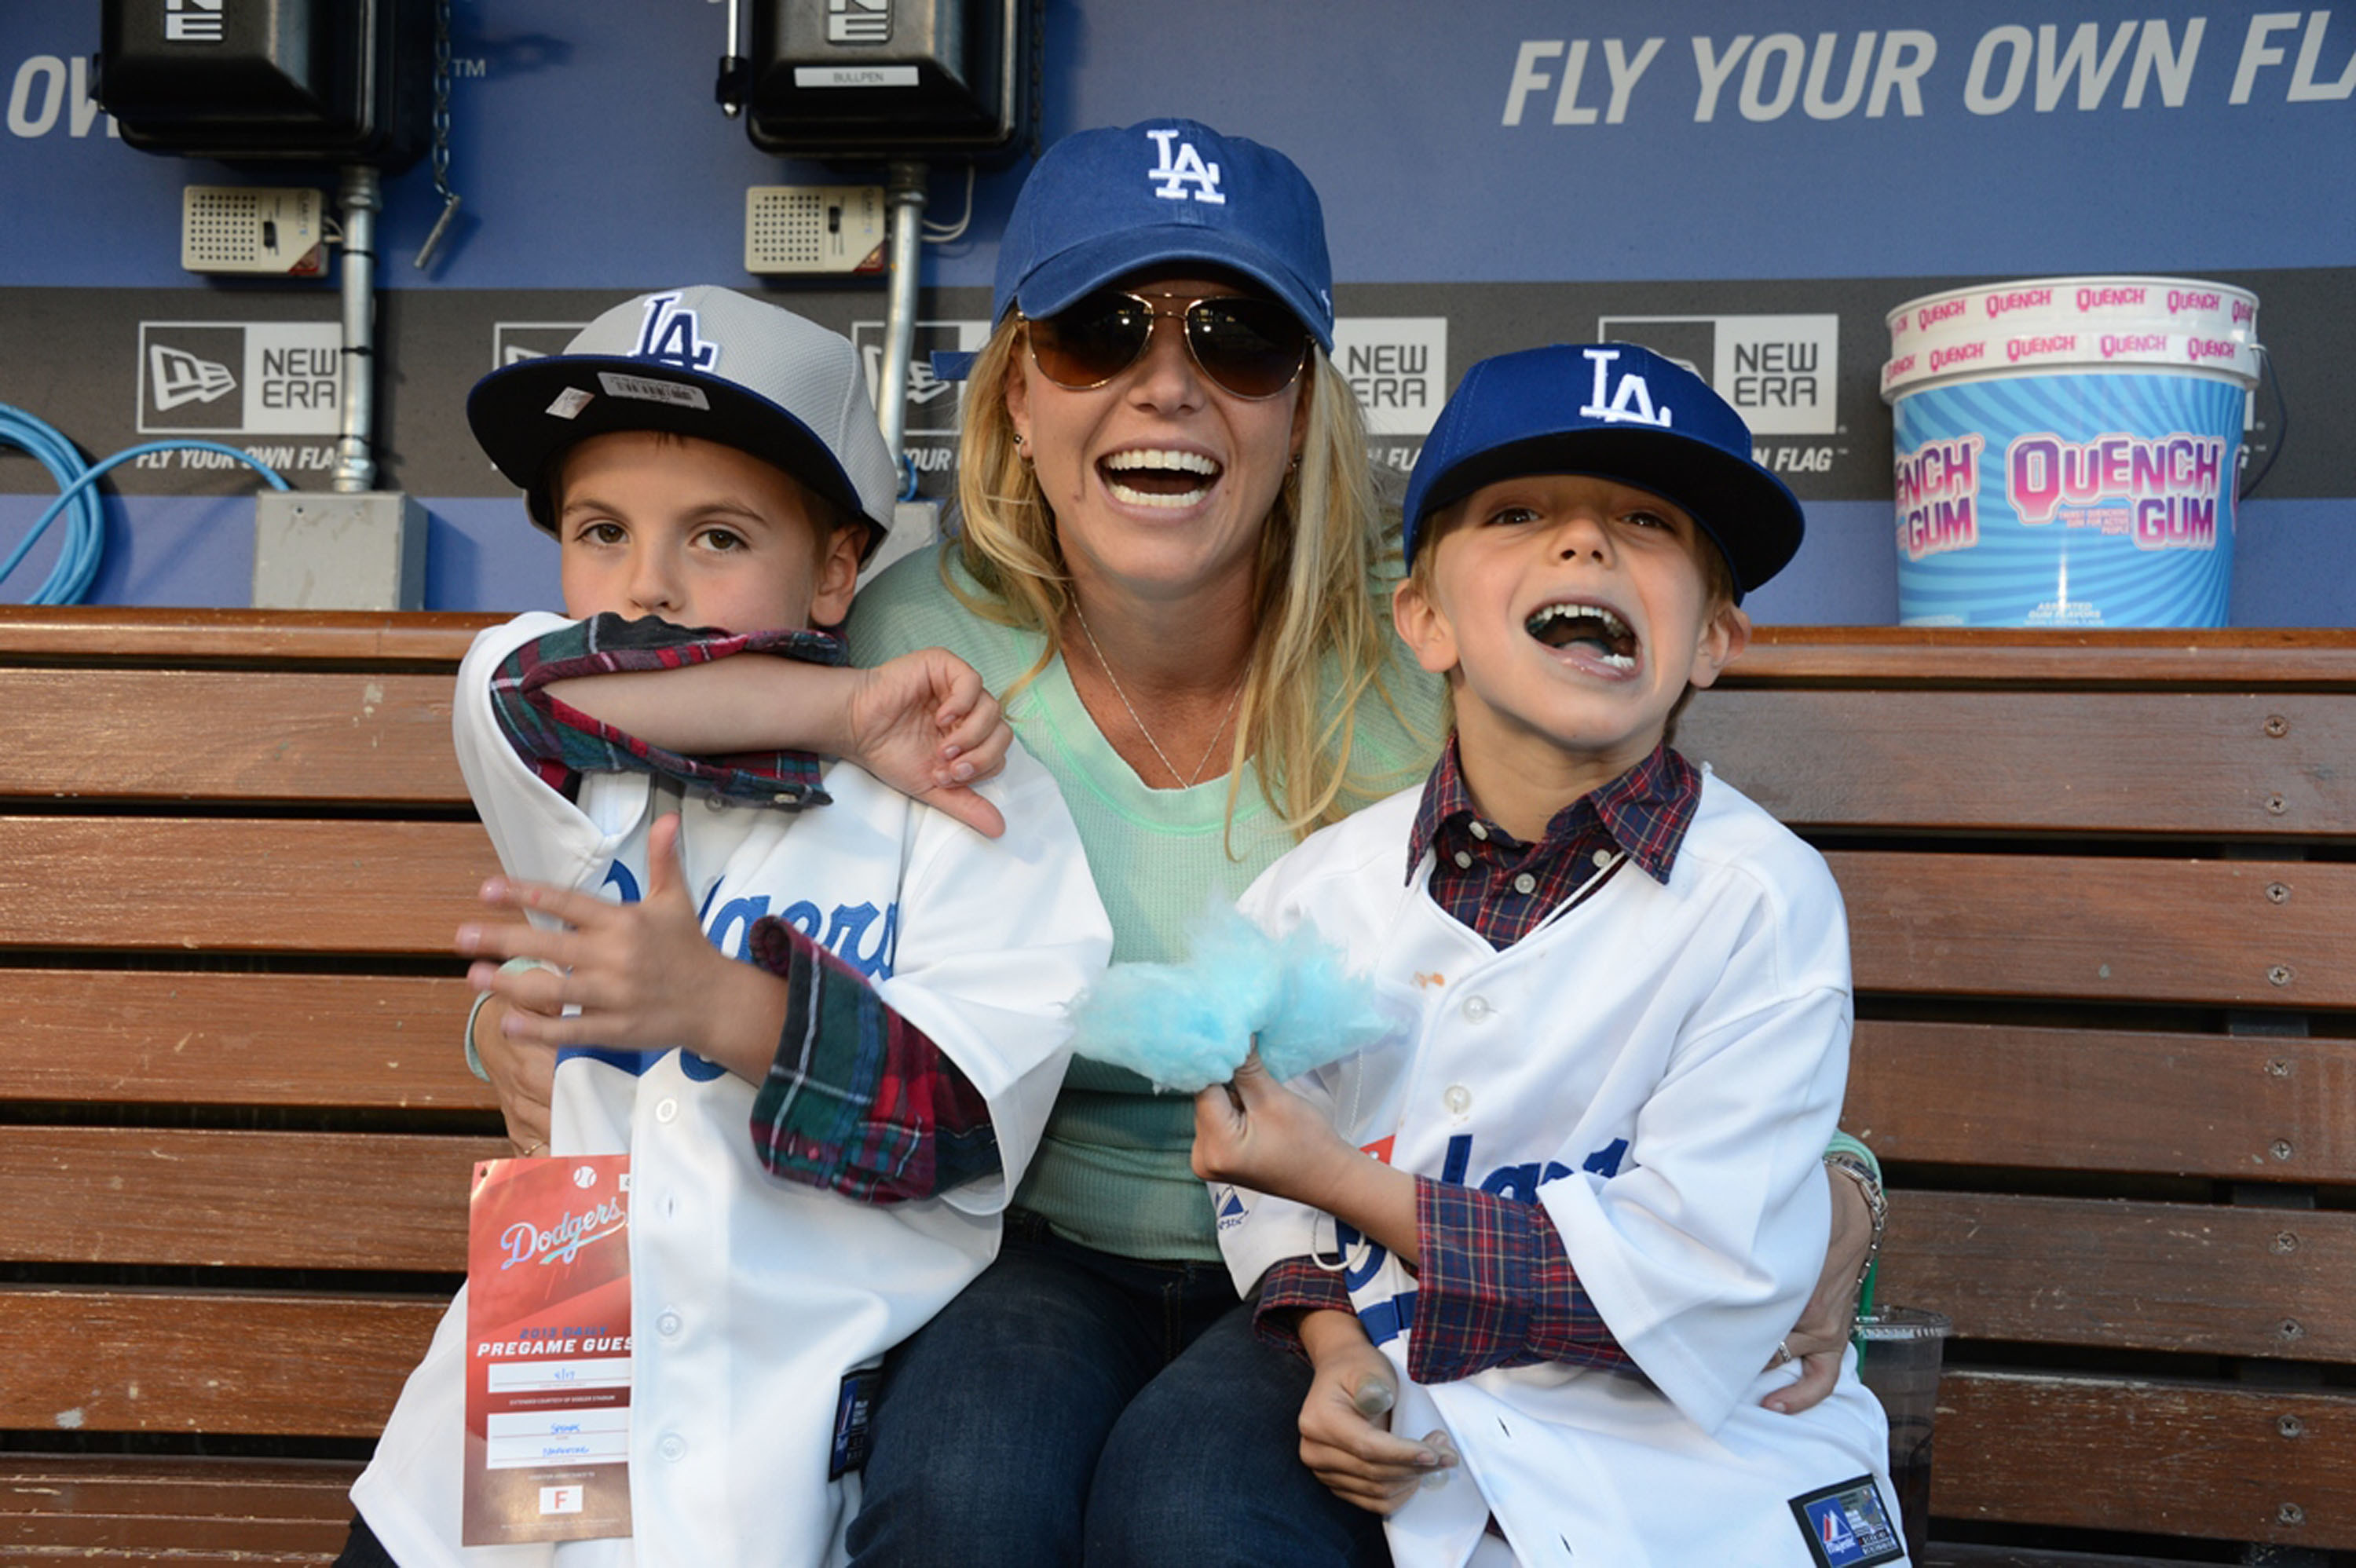 In this handout photo provided by the LA Dodgers, Britney Spears poses with sons Sean Preston Federline and Jayden James Federline during a game against the San Diego Padres at Dodger Stadium on April 17, 2013 in Los Angeles, California